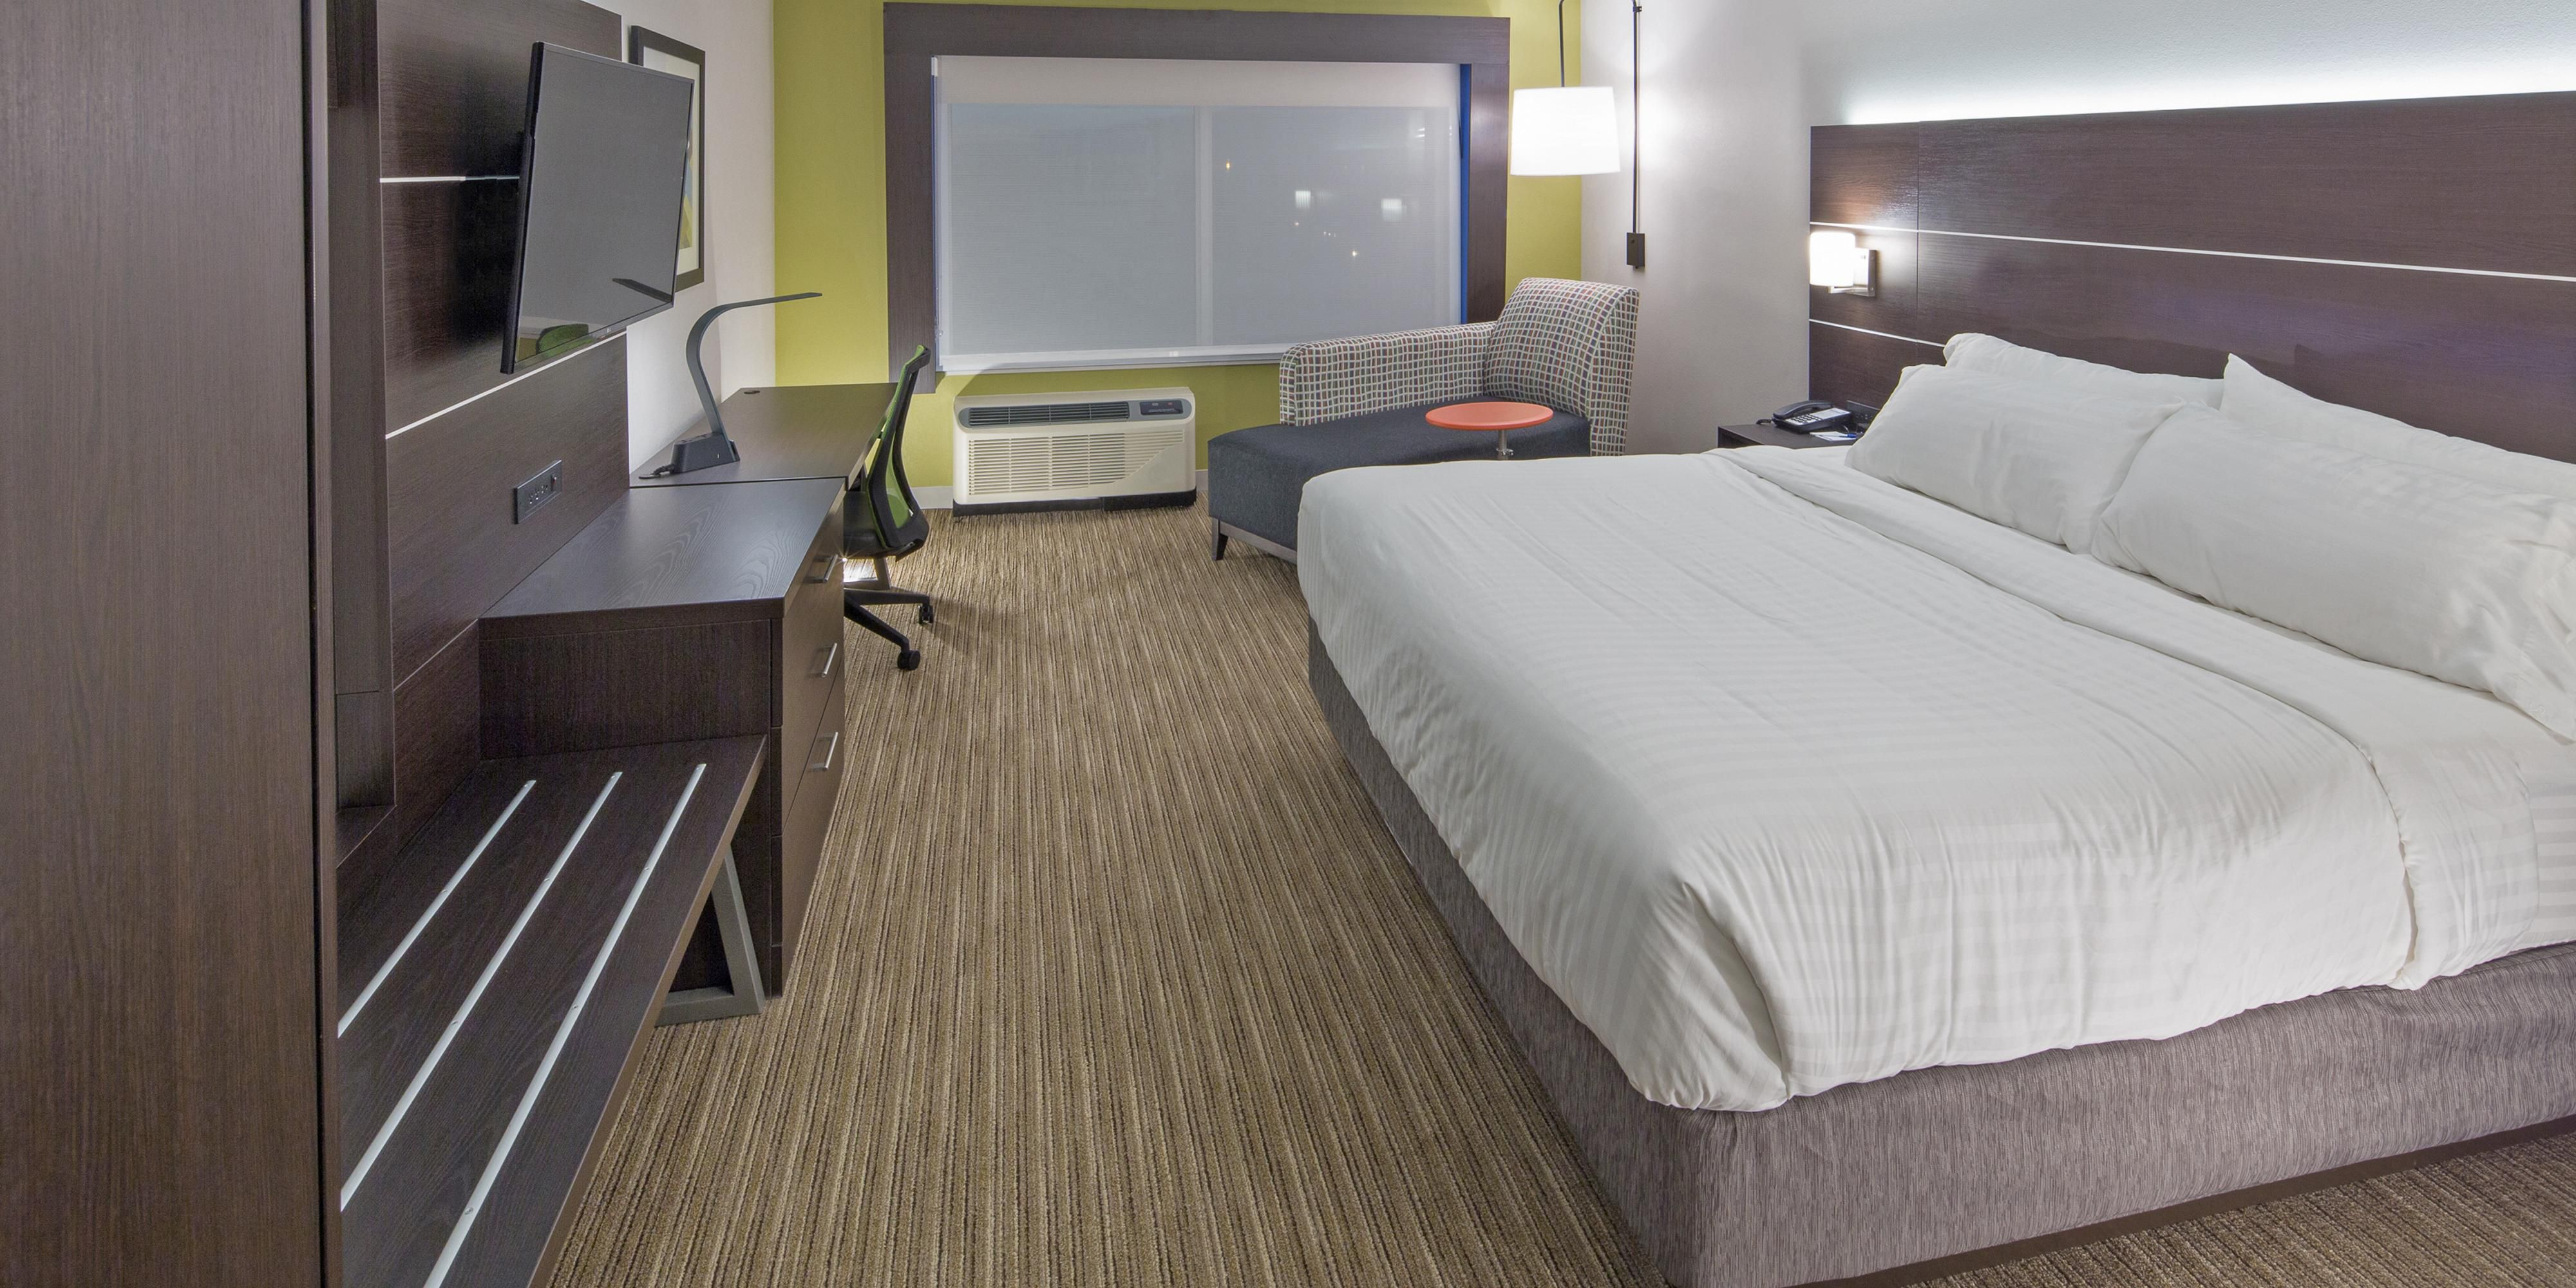 Holiday Inn Express & Suites Indianapolis NW Whitestown Hotel by IHG